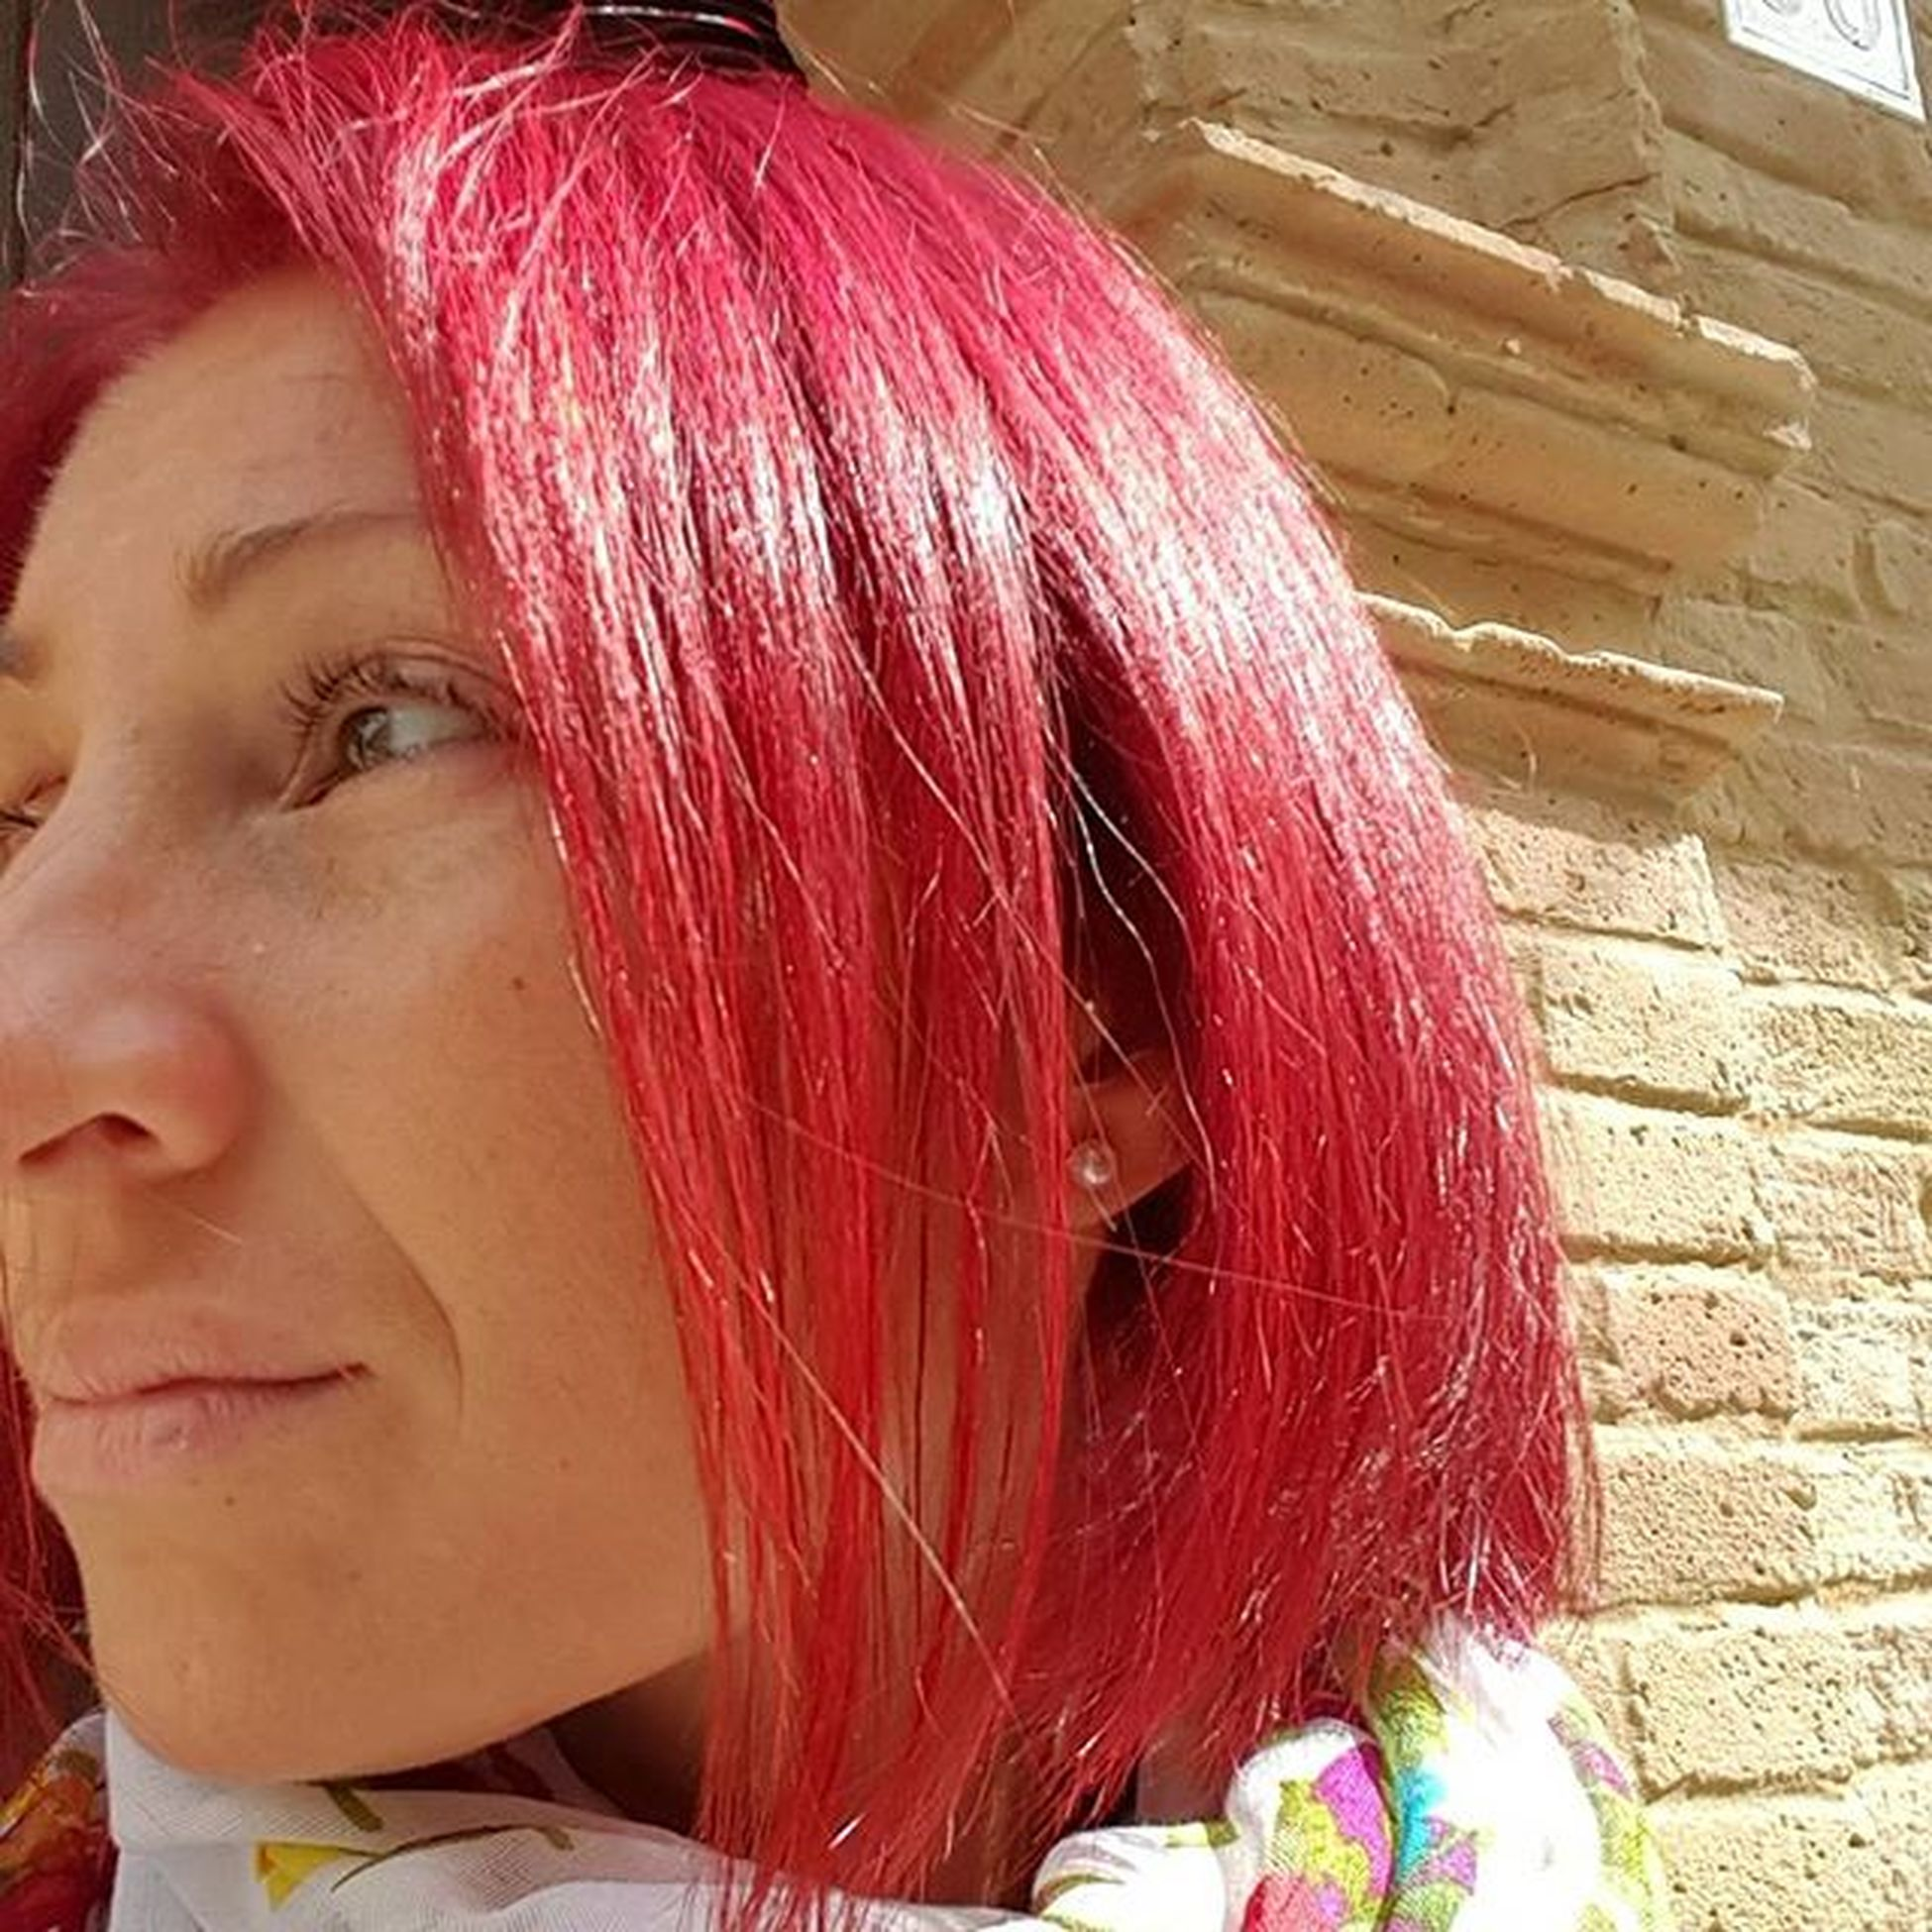 Saturday morning.. a shy sun, many clouds and a little bit cold.. (love red color but my nose is very bad, I know 😒) Sun Saturday Redhair Aperitivtime Lifeinred Redismycolor Lovered Majicontrastmagenta Majirouge666 Majirouge Majirel Wellakolestonperfect Wellakoleston065 Lorealmajirouge666 Lorealprofessionnel Wella Loreal